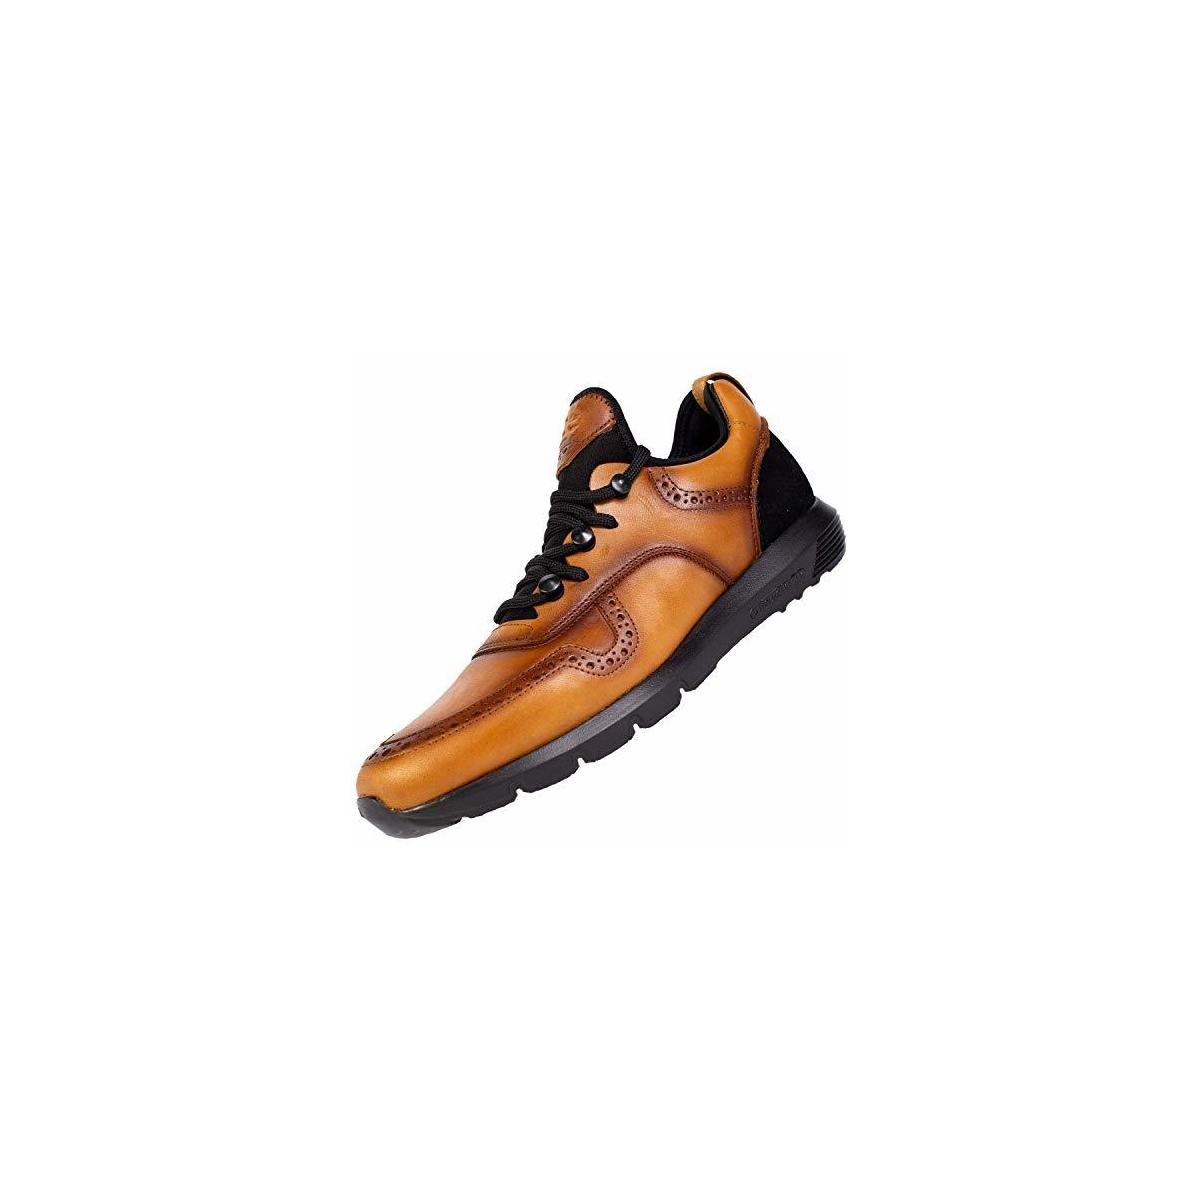 SABATTER Mens Leather Sport Sneakers for Walking - Leather Upper with Neoprene and Berkshire Lining Extra Light Athletic Training Running Shoes with Triple Memory Foam Insole - Spirit